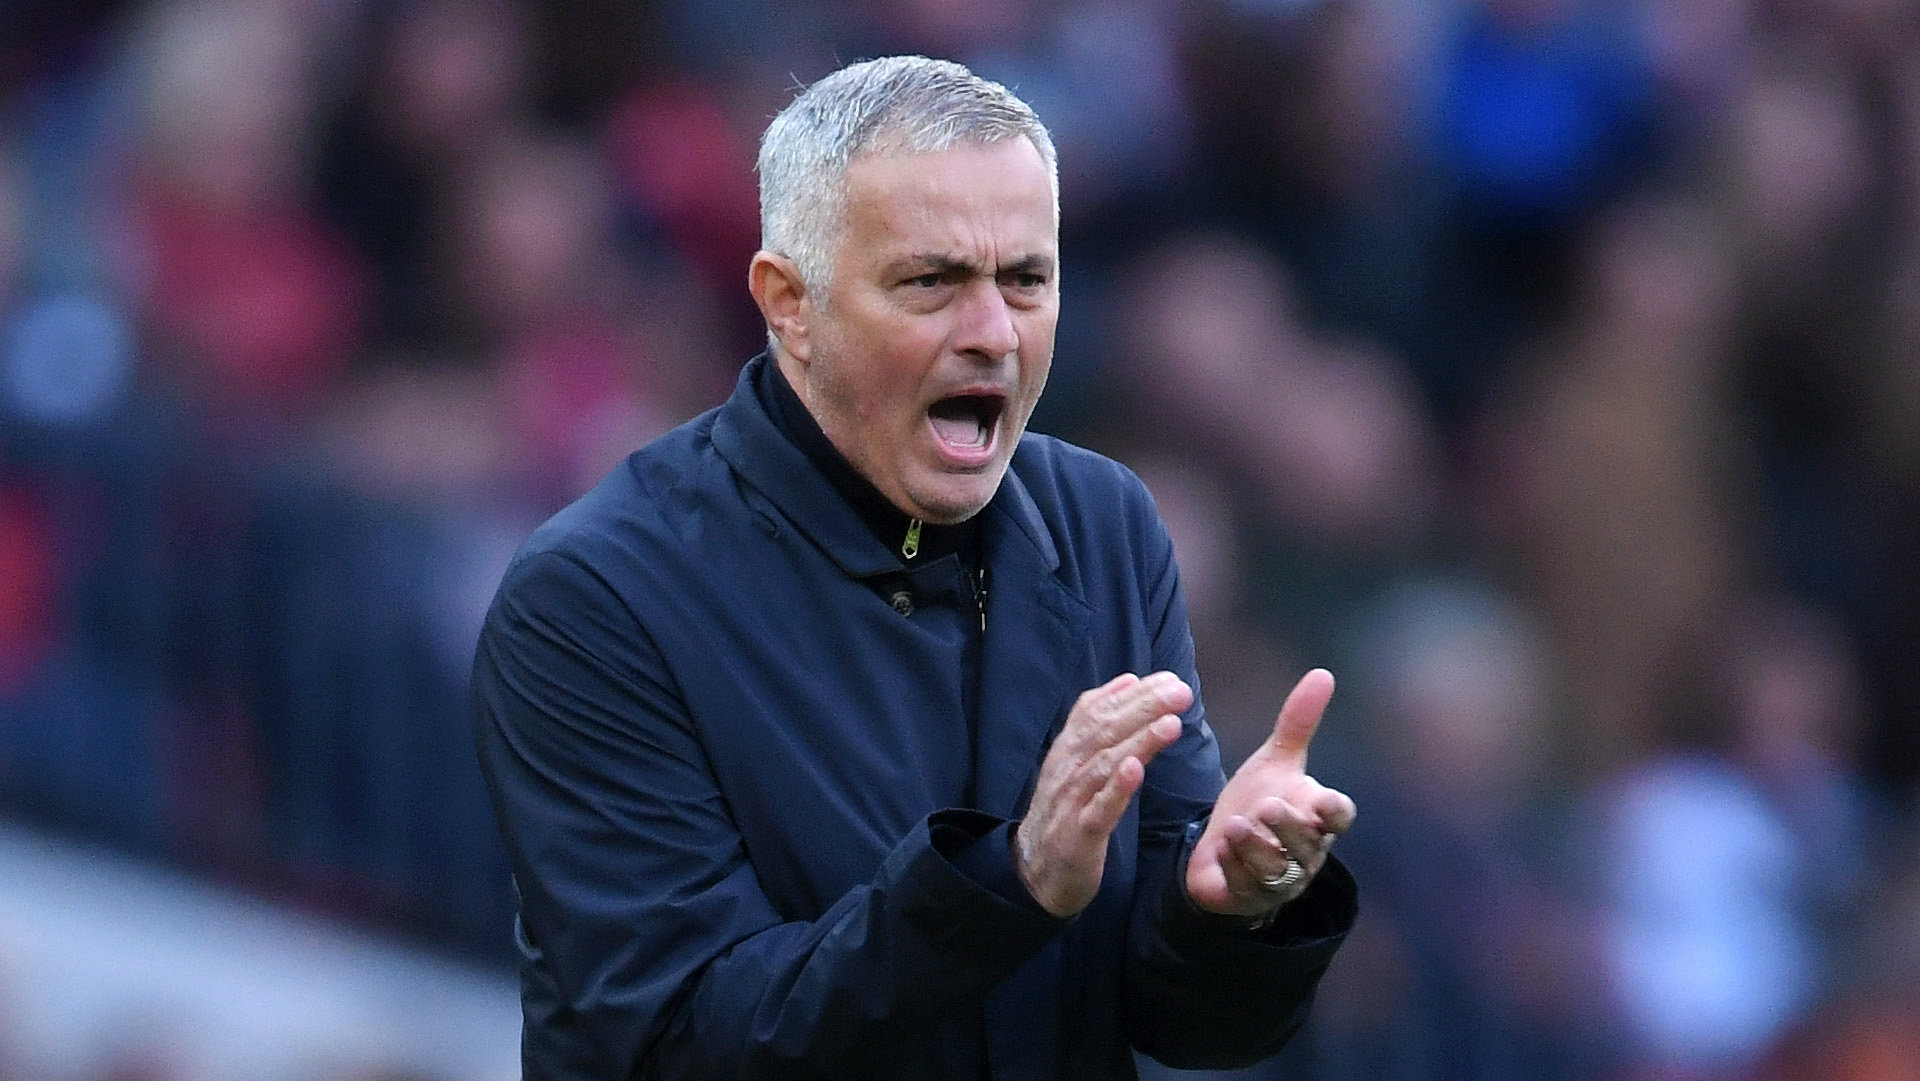 Jose Mourinho Manchester United Newcastle Premier League 2018-19